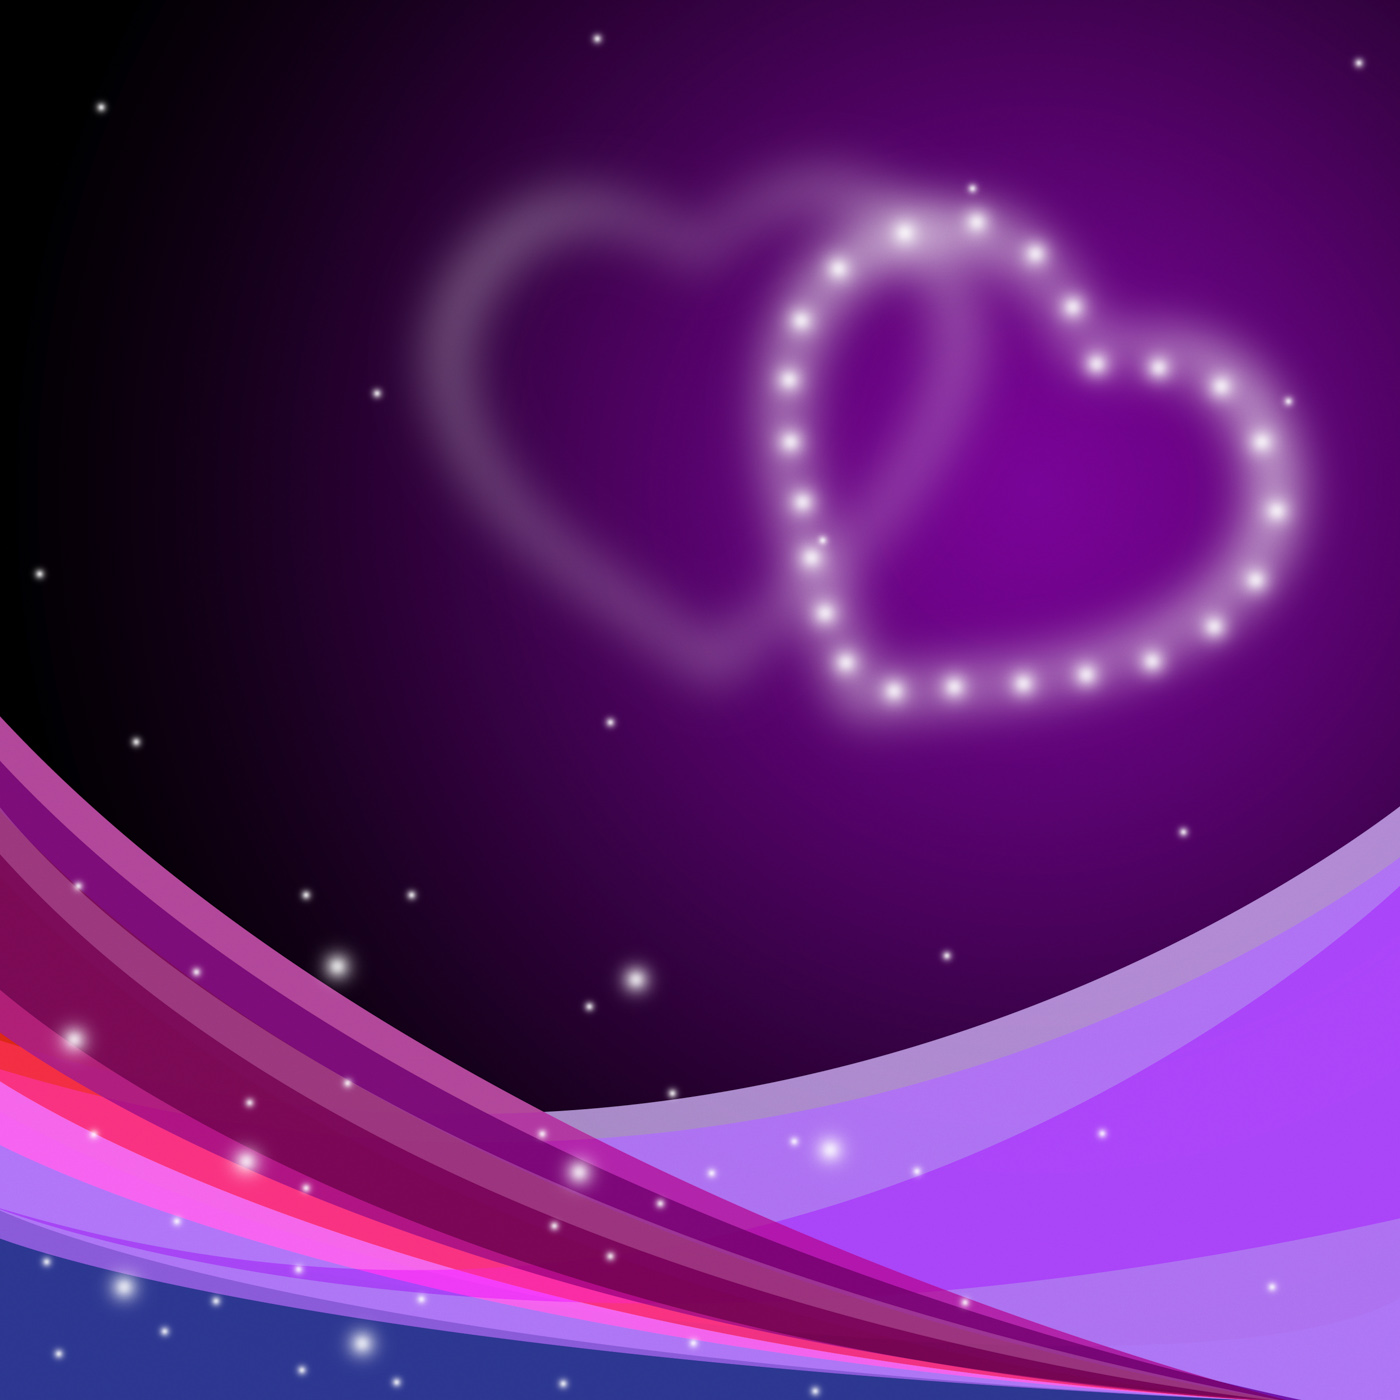 Background heart represents valentines day and affection photo